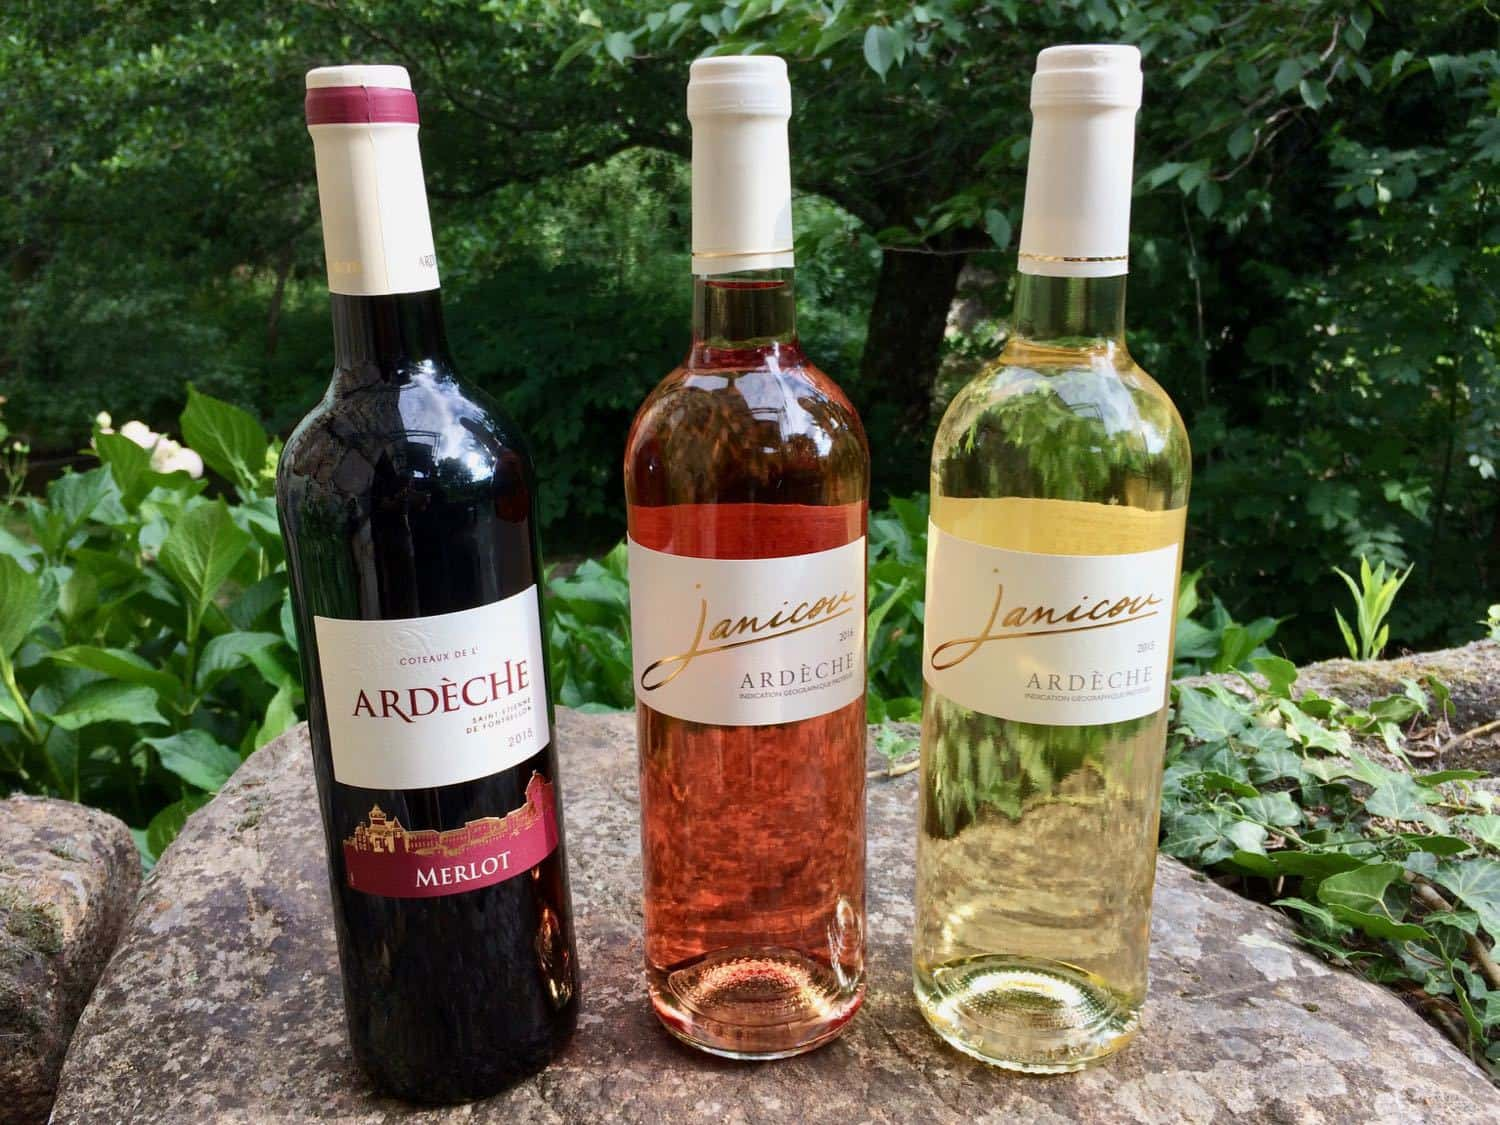 Three bottles of wine from the Ardèche: red, rosé and white whine